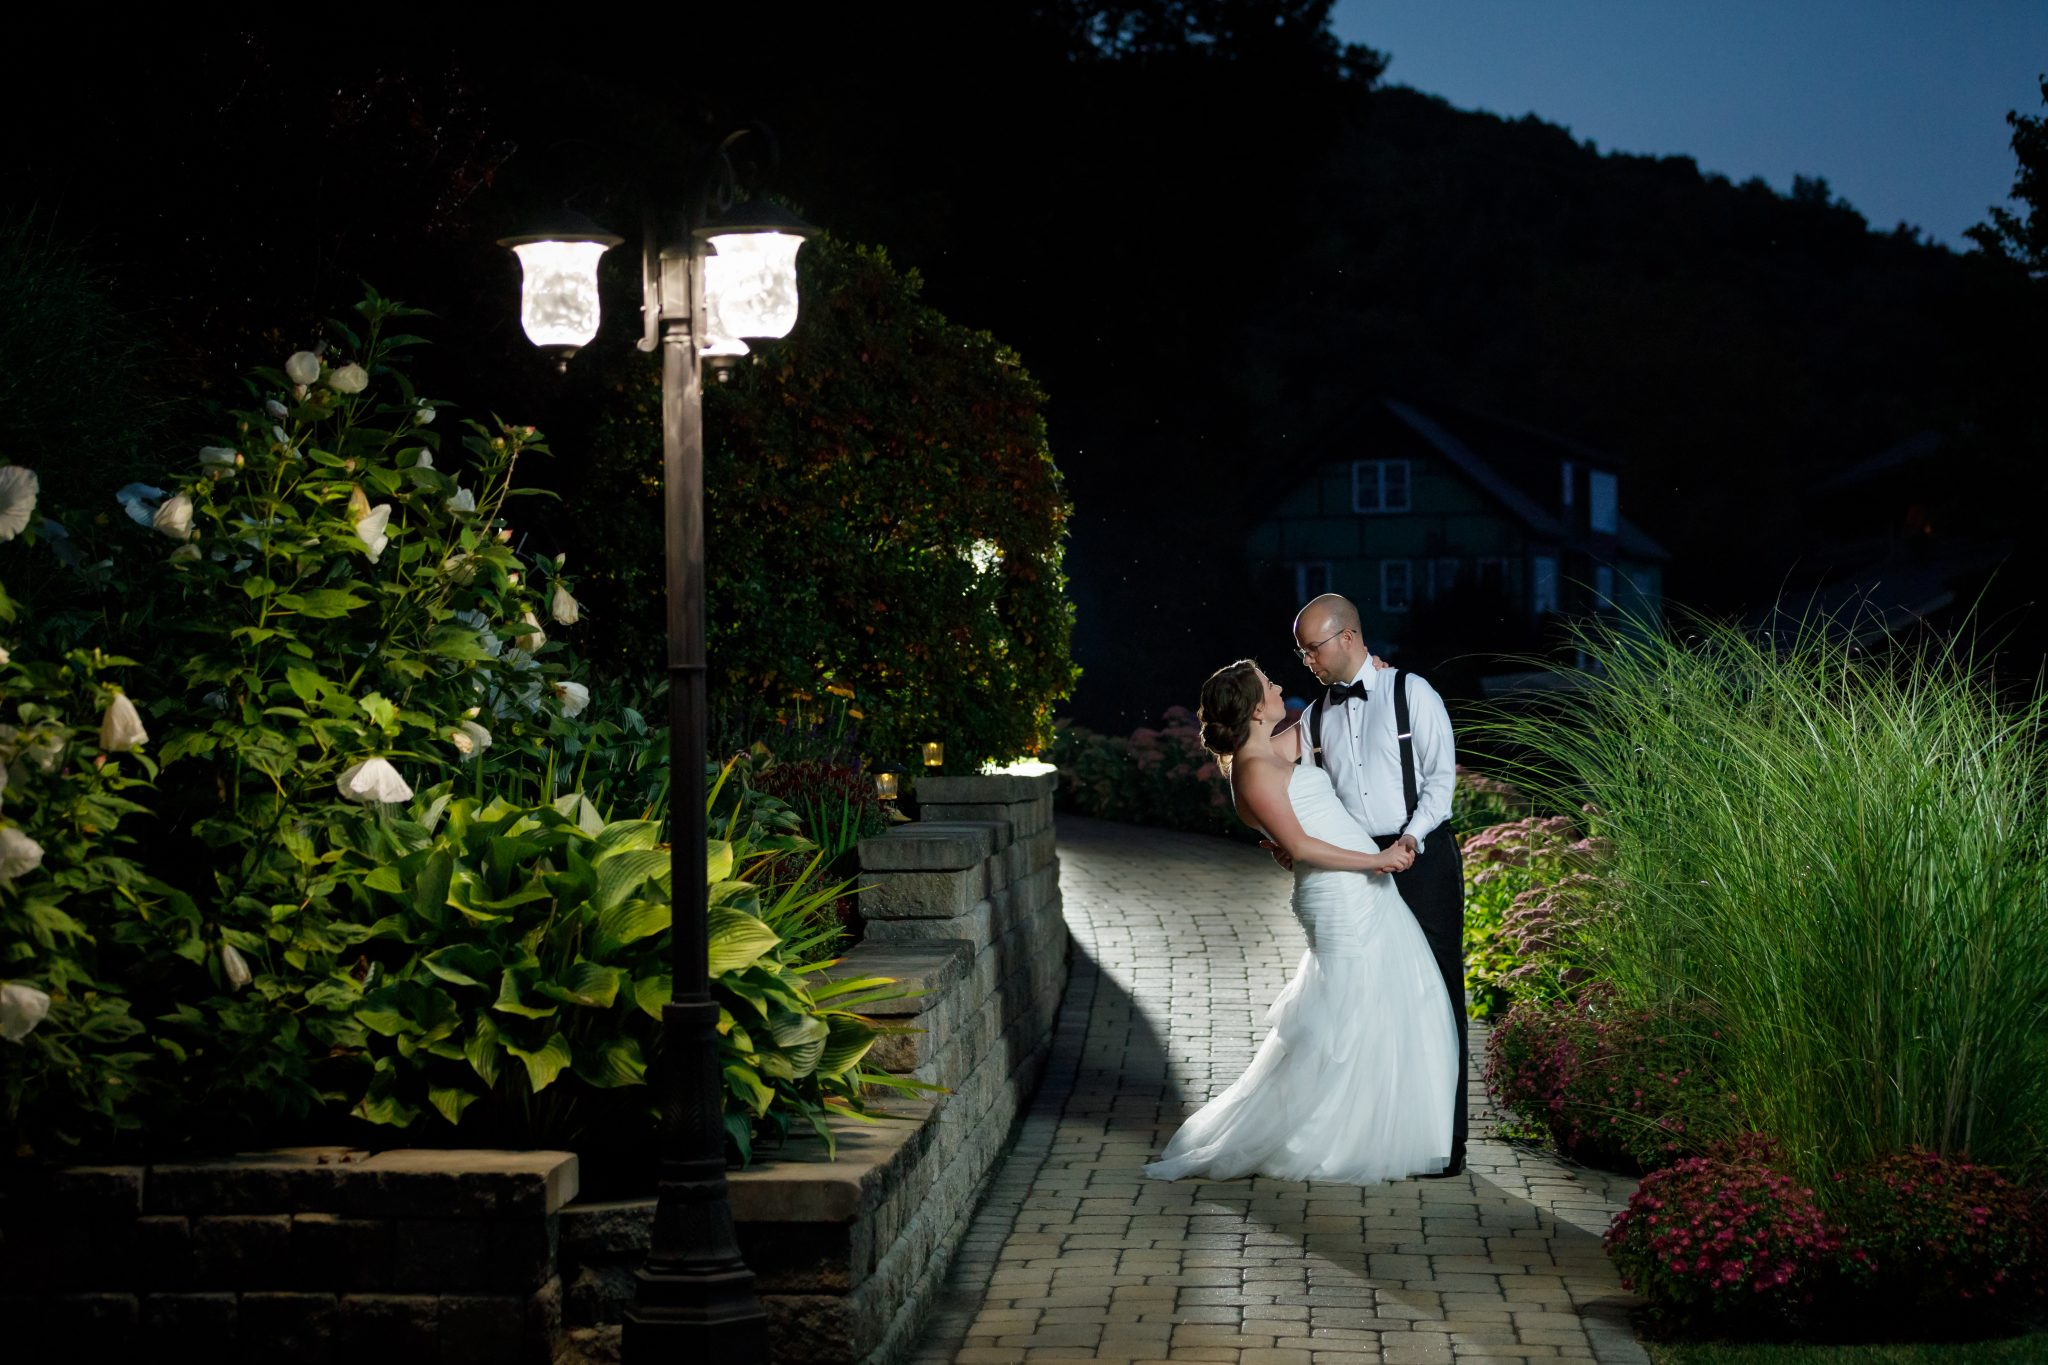 The Mountain Rose Inn wedding couple night time portrait